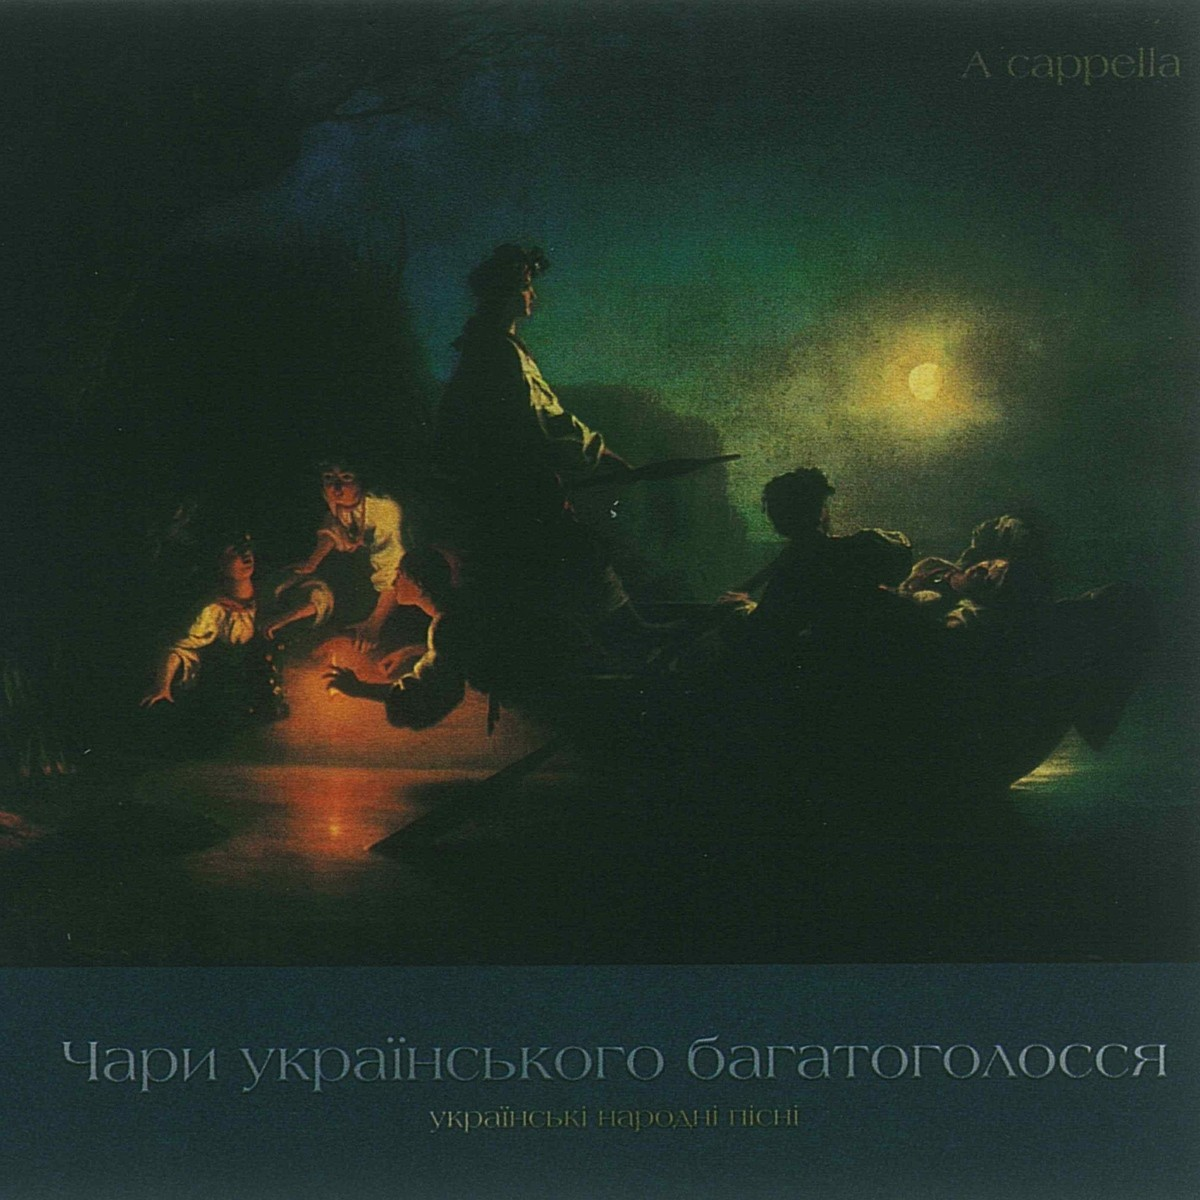 CD Chary ukrajins'koho bahatoholossja. Ukrainian folk songs. A cappella. Golden Collection. Charms of Ukrainian Polyphony